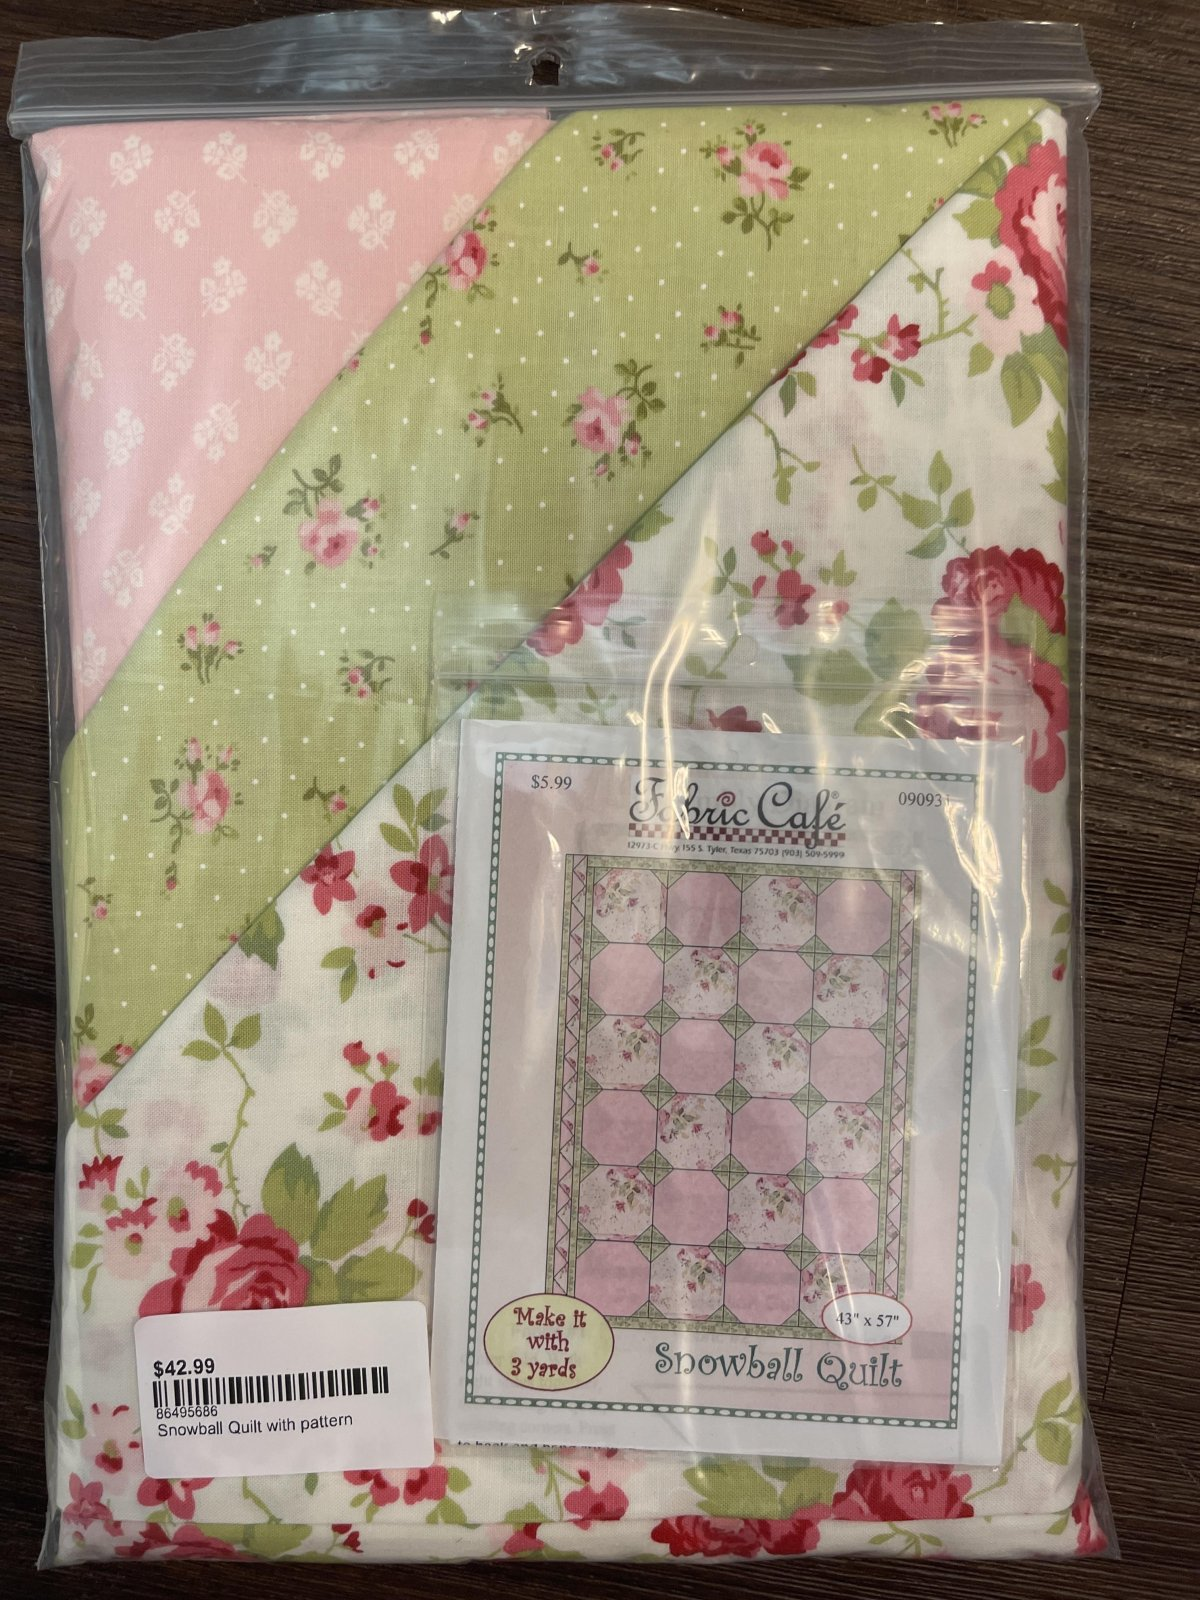 Snowball Quilt Kit with pattern